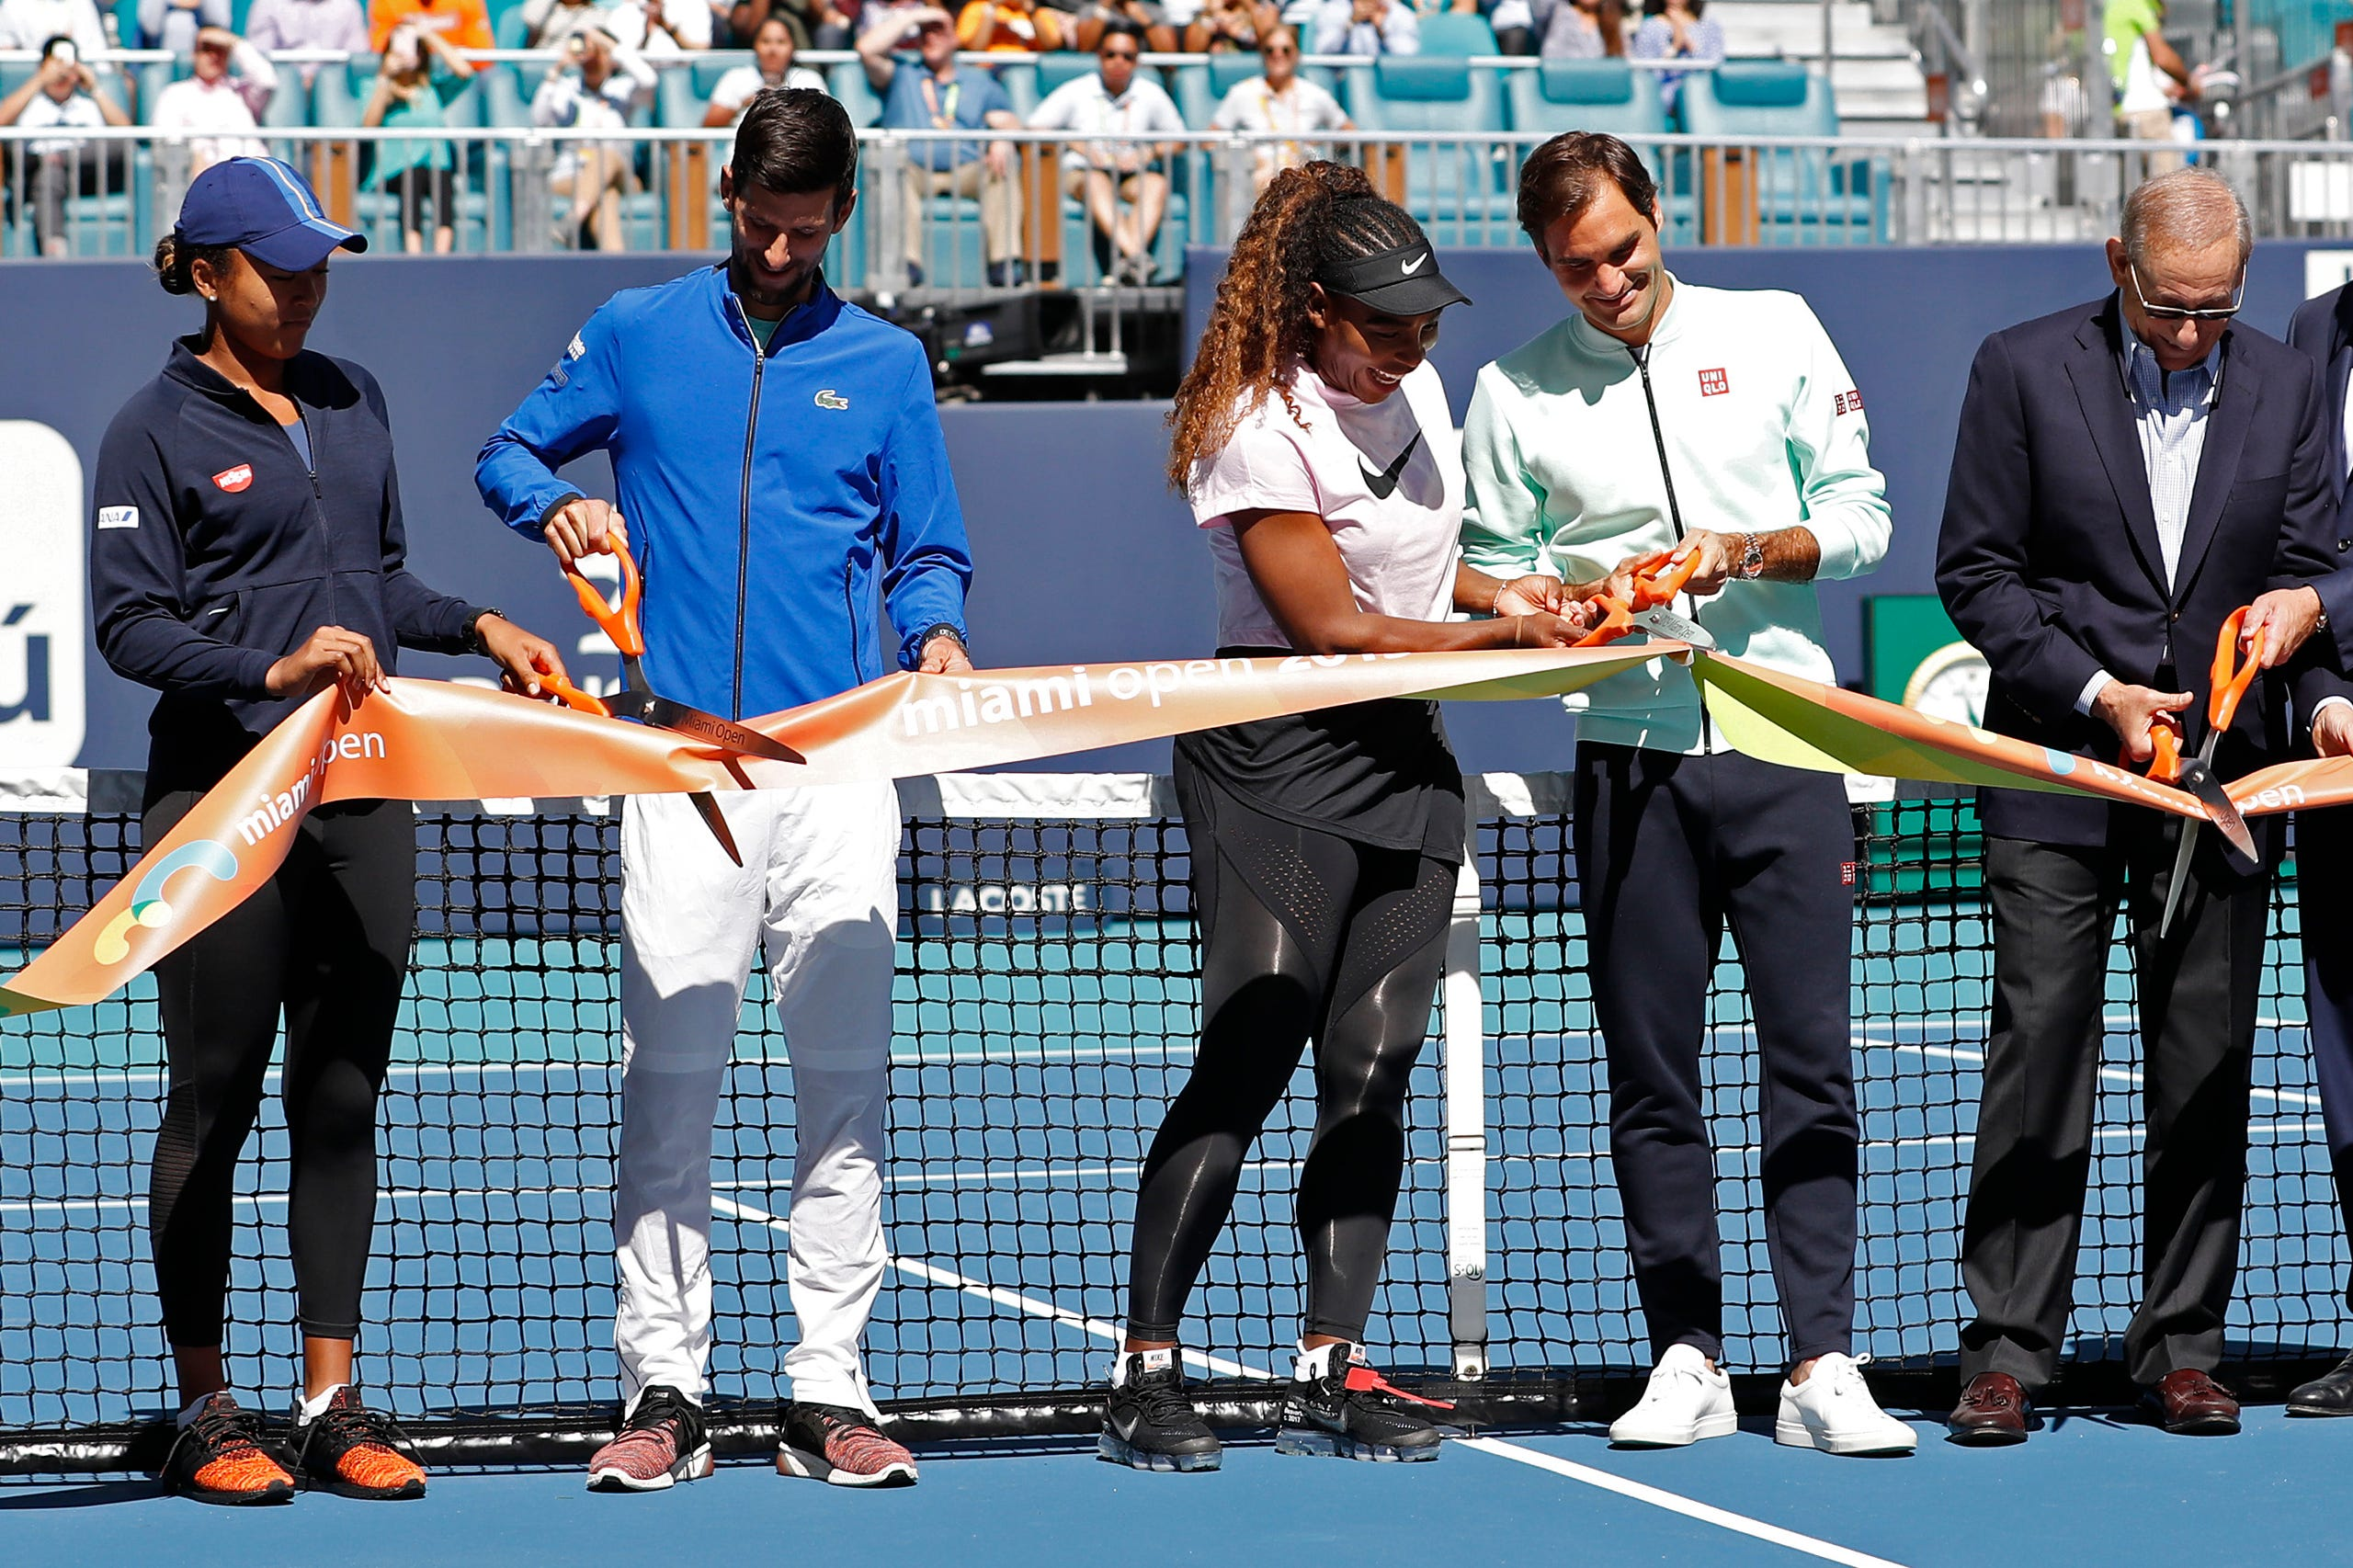 From left, Naomi Osaka of Japan, Novak Djokovic of Serbia, Serena Williams of the United States, and Roger Federer of Switzerland participate in a ribbon cutting ceremony on new stadium court at Hard Rock Stadium prior to play in the first round of the Miami Open at Miami Open Tennis Complex on March 20, 2019.